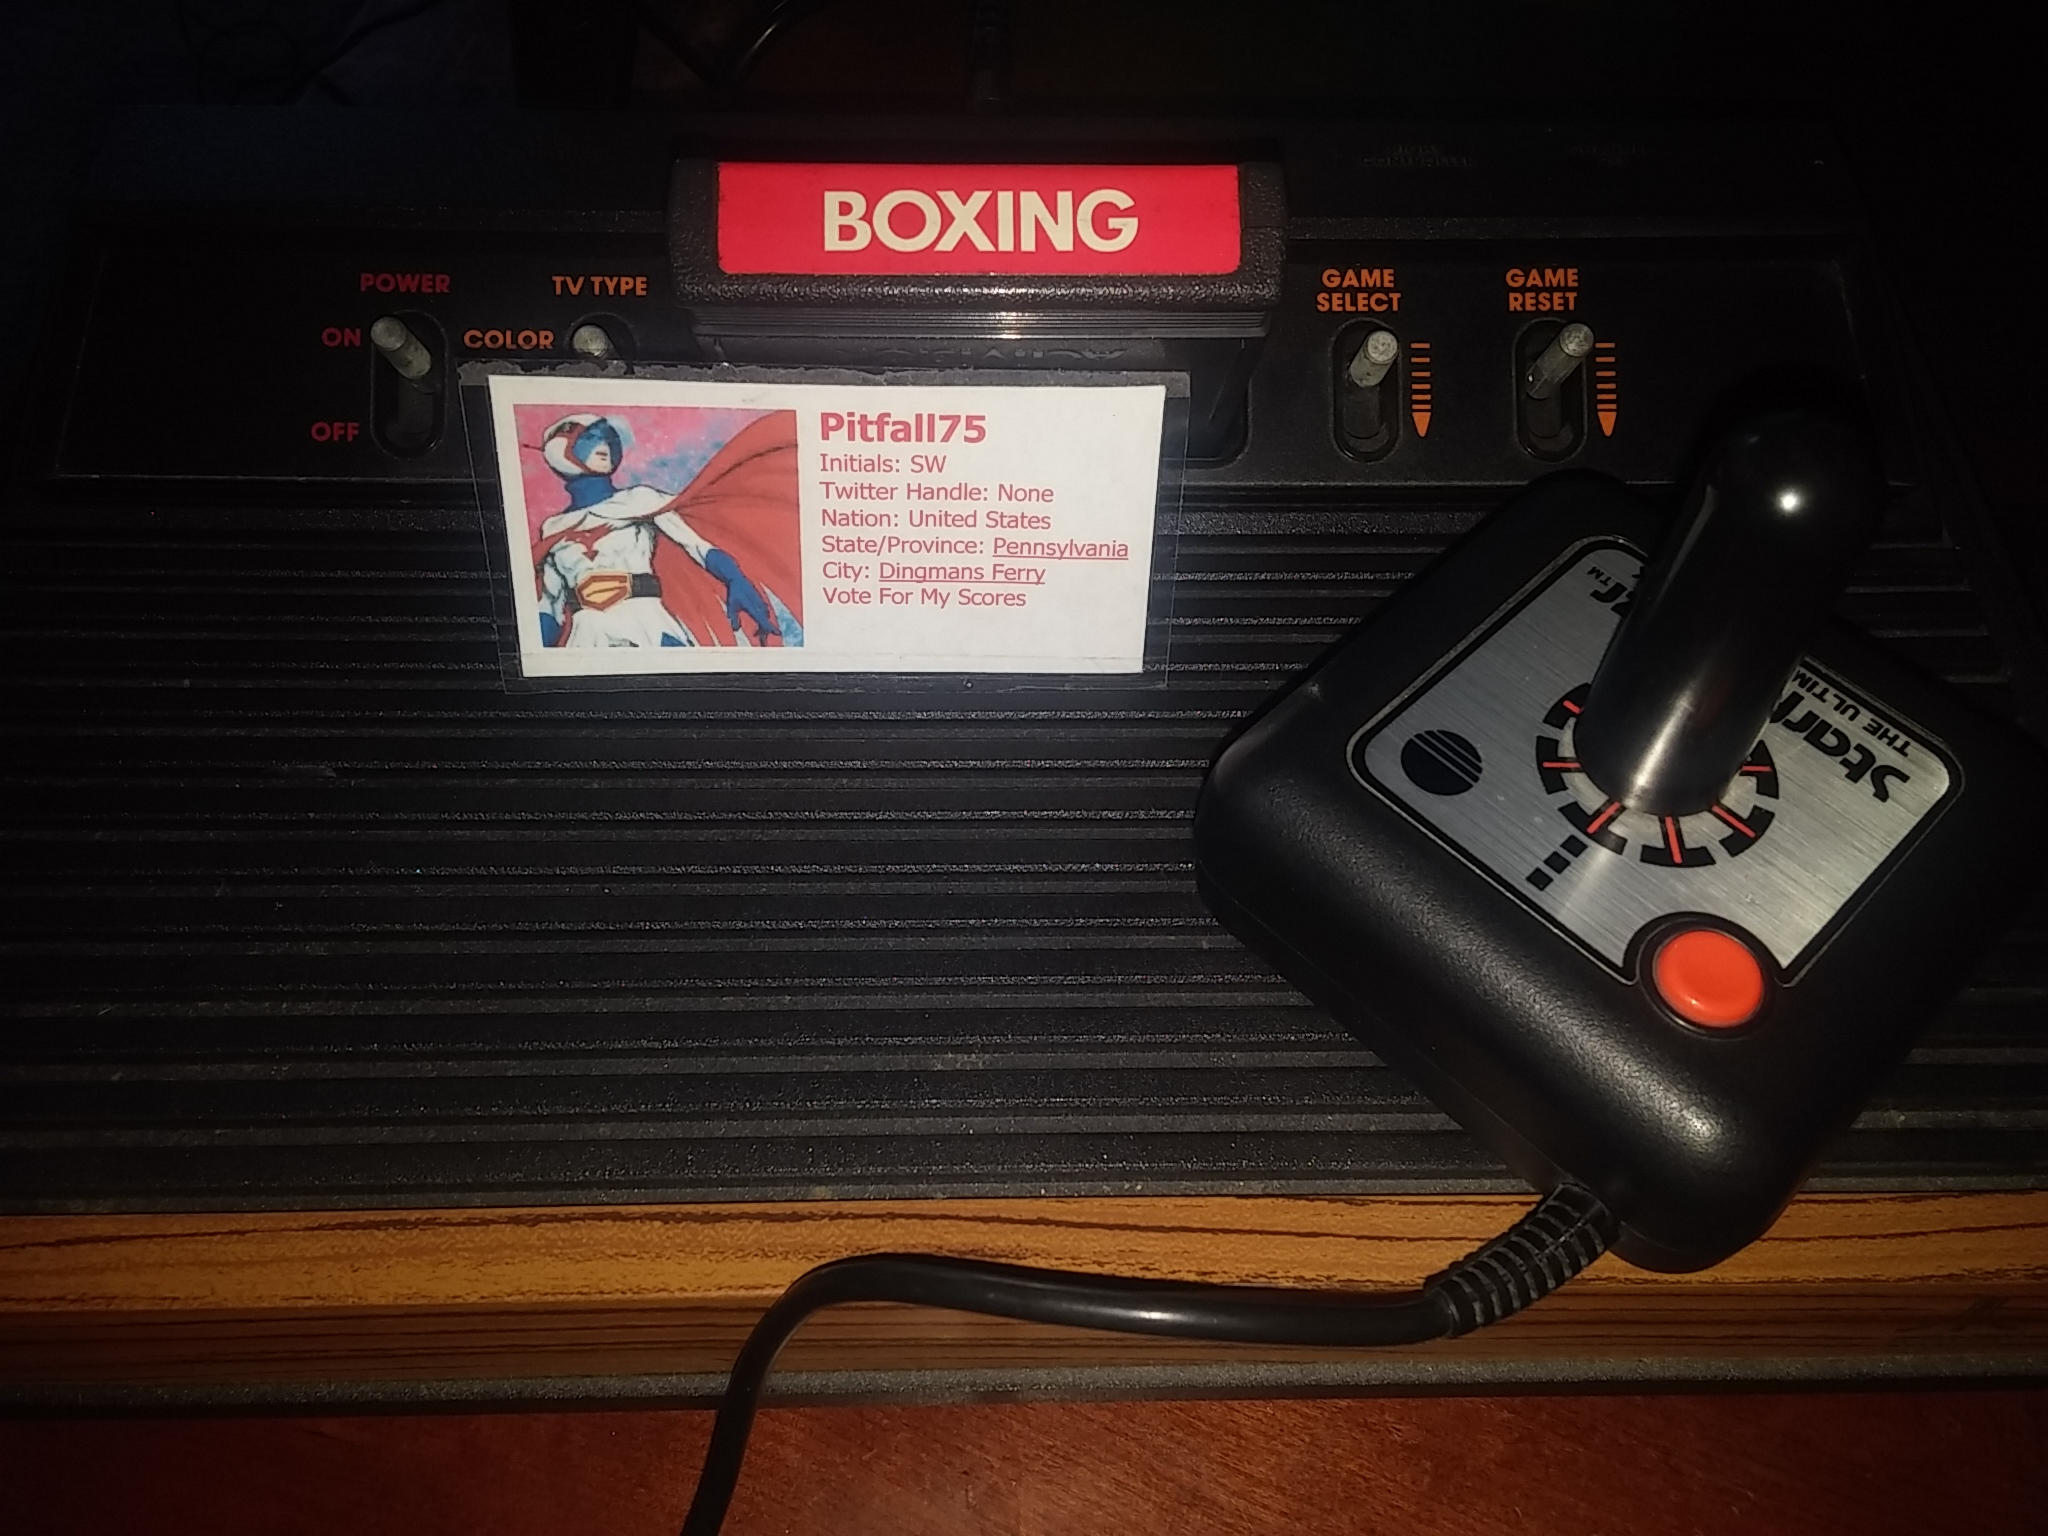 Boxing: Game 1AA [Point Difference at Time Complete] 77 points